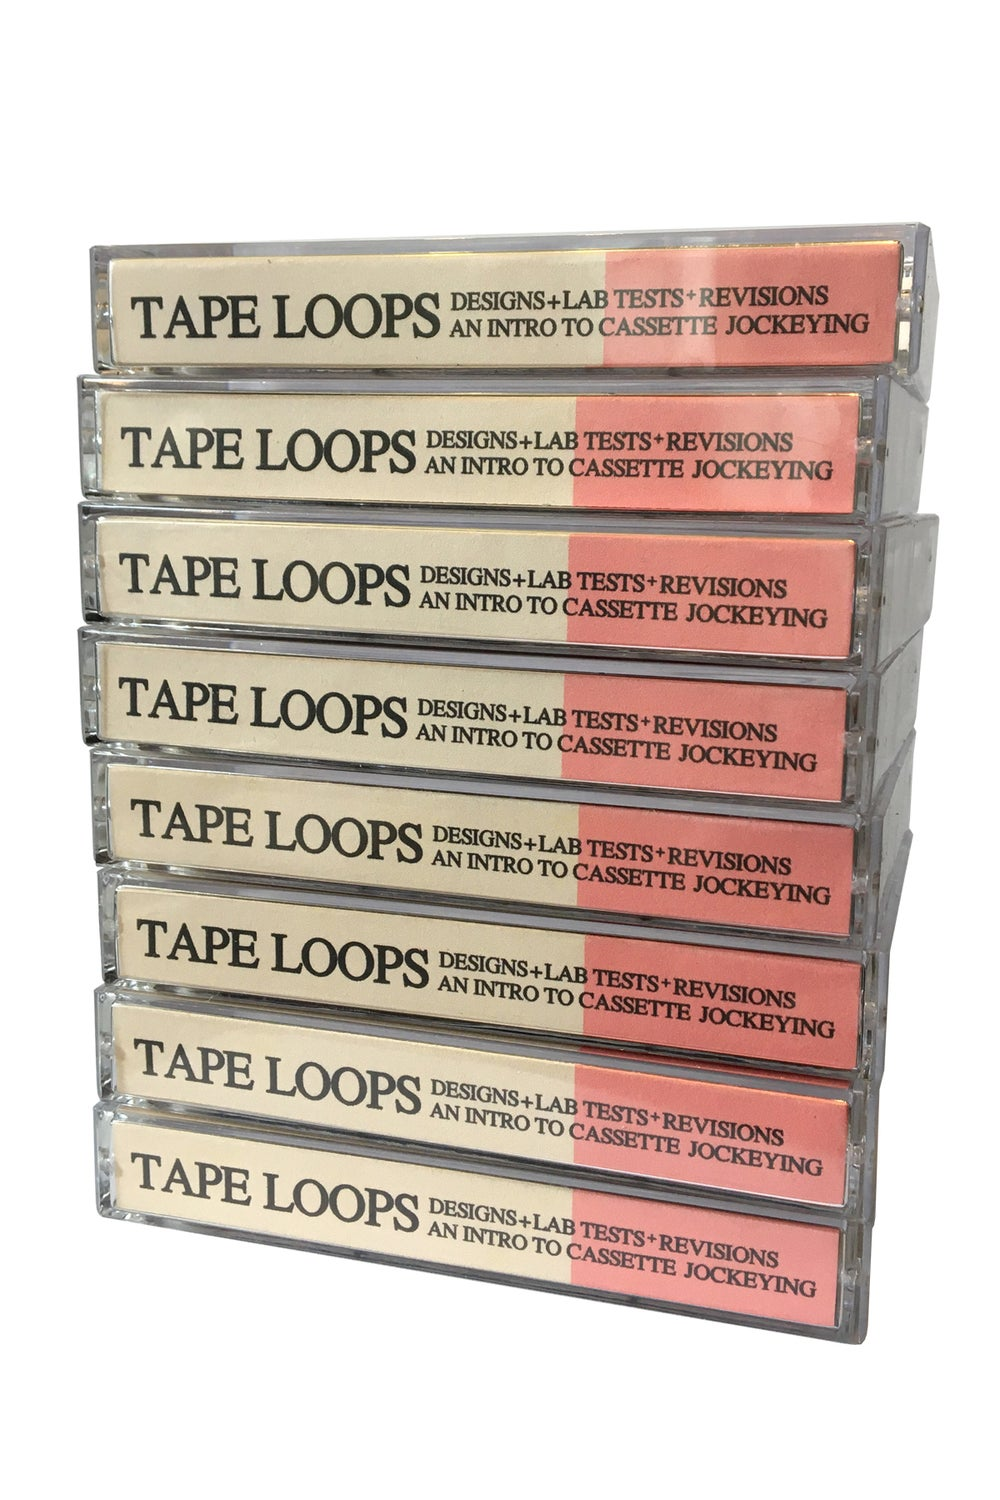 Tape Loops: Designs + Lab Tests + Revisions // An Intro To Cassette Jockeying